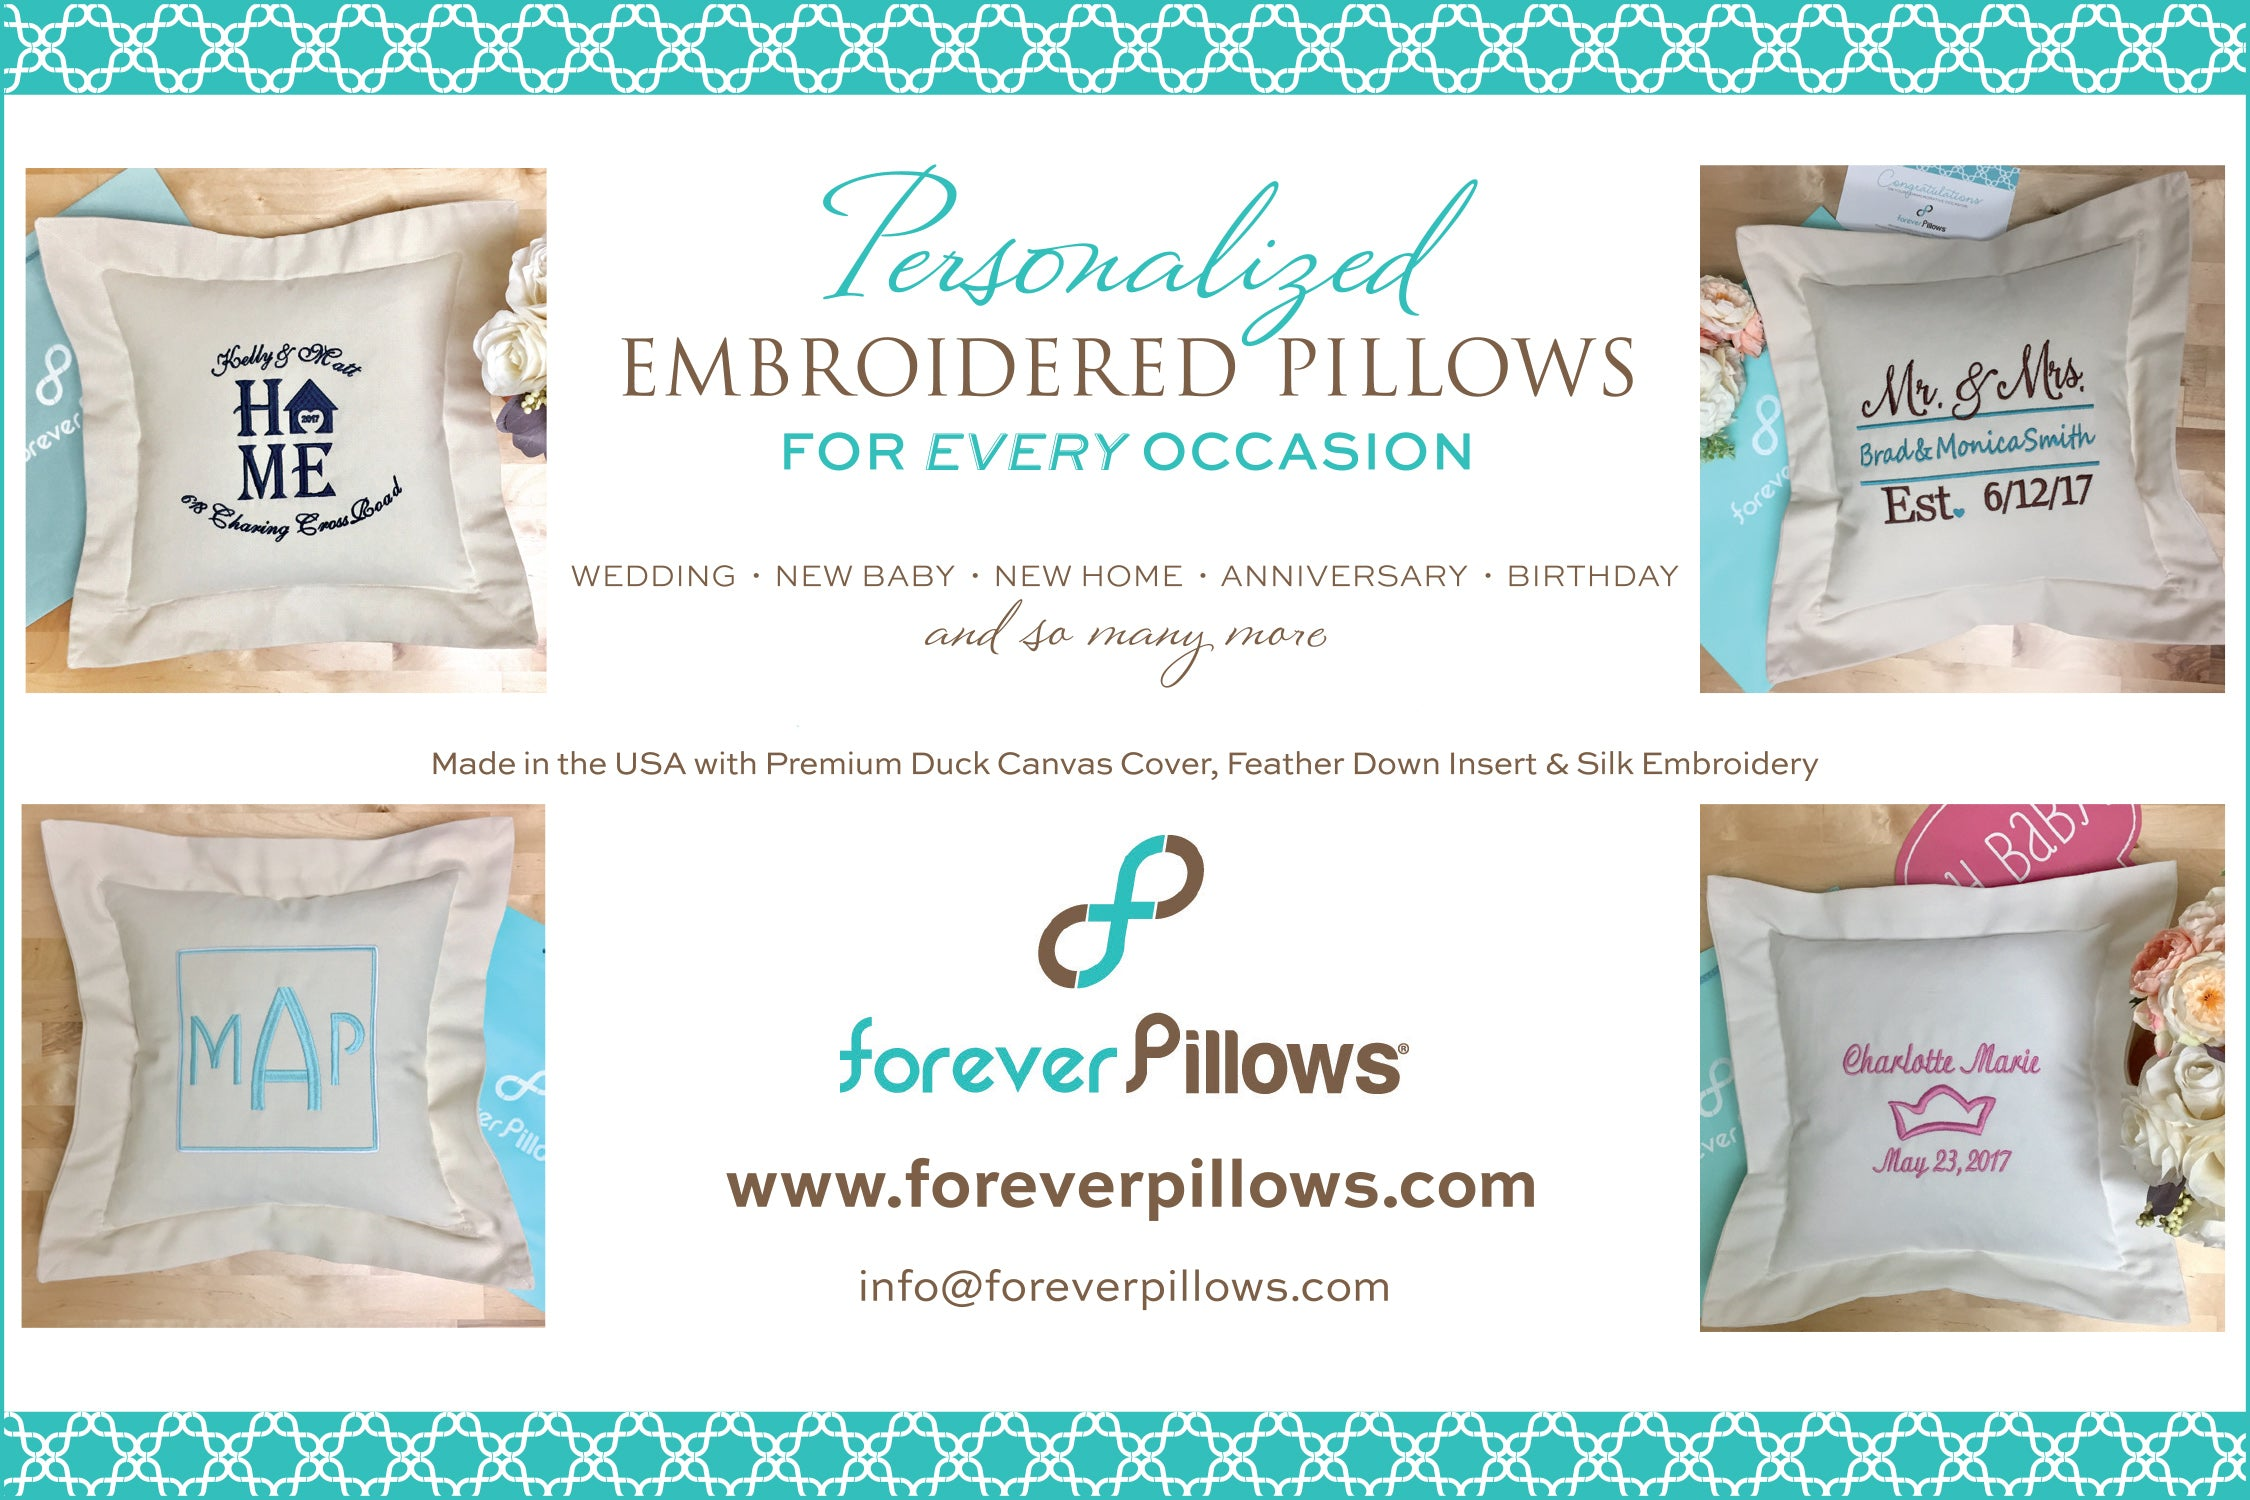 Personalized Pillows | Forever Pillows | Custom Pillows